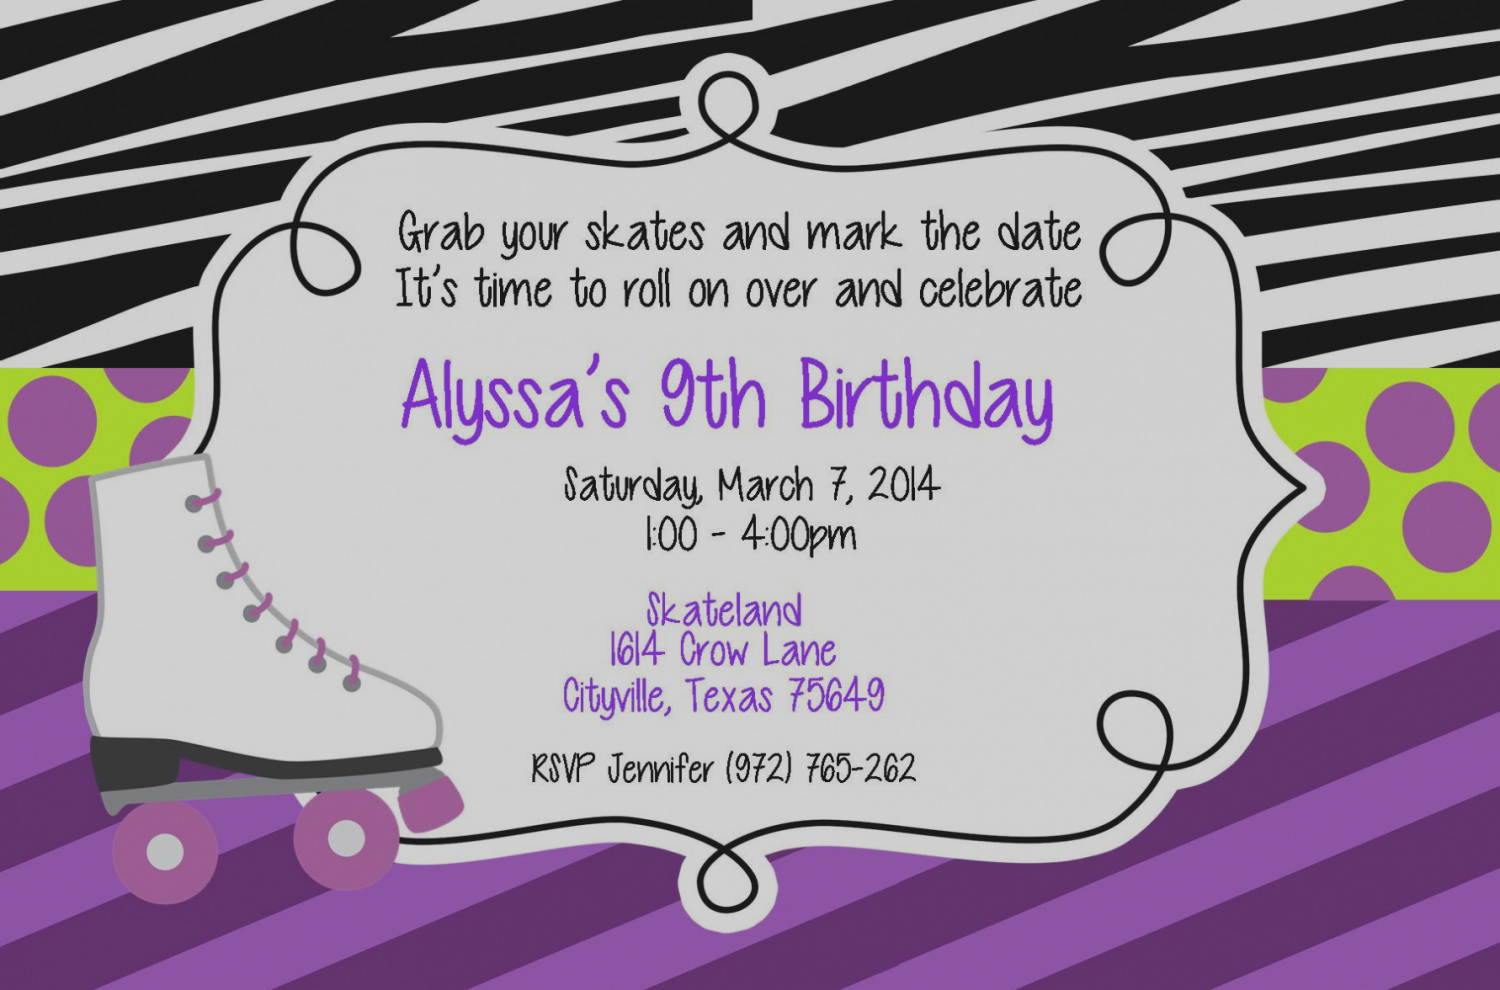 roller skating birthday party invitation template ; new-of-roller-skating-birthday-party-invitations-marvelous-you